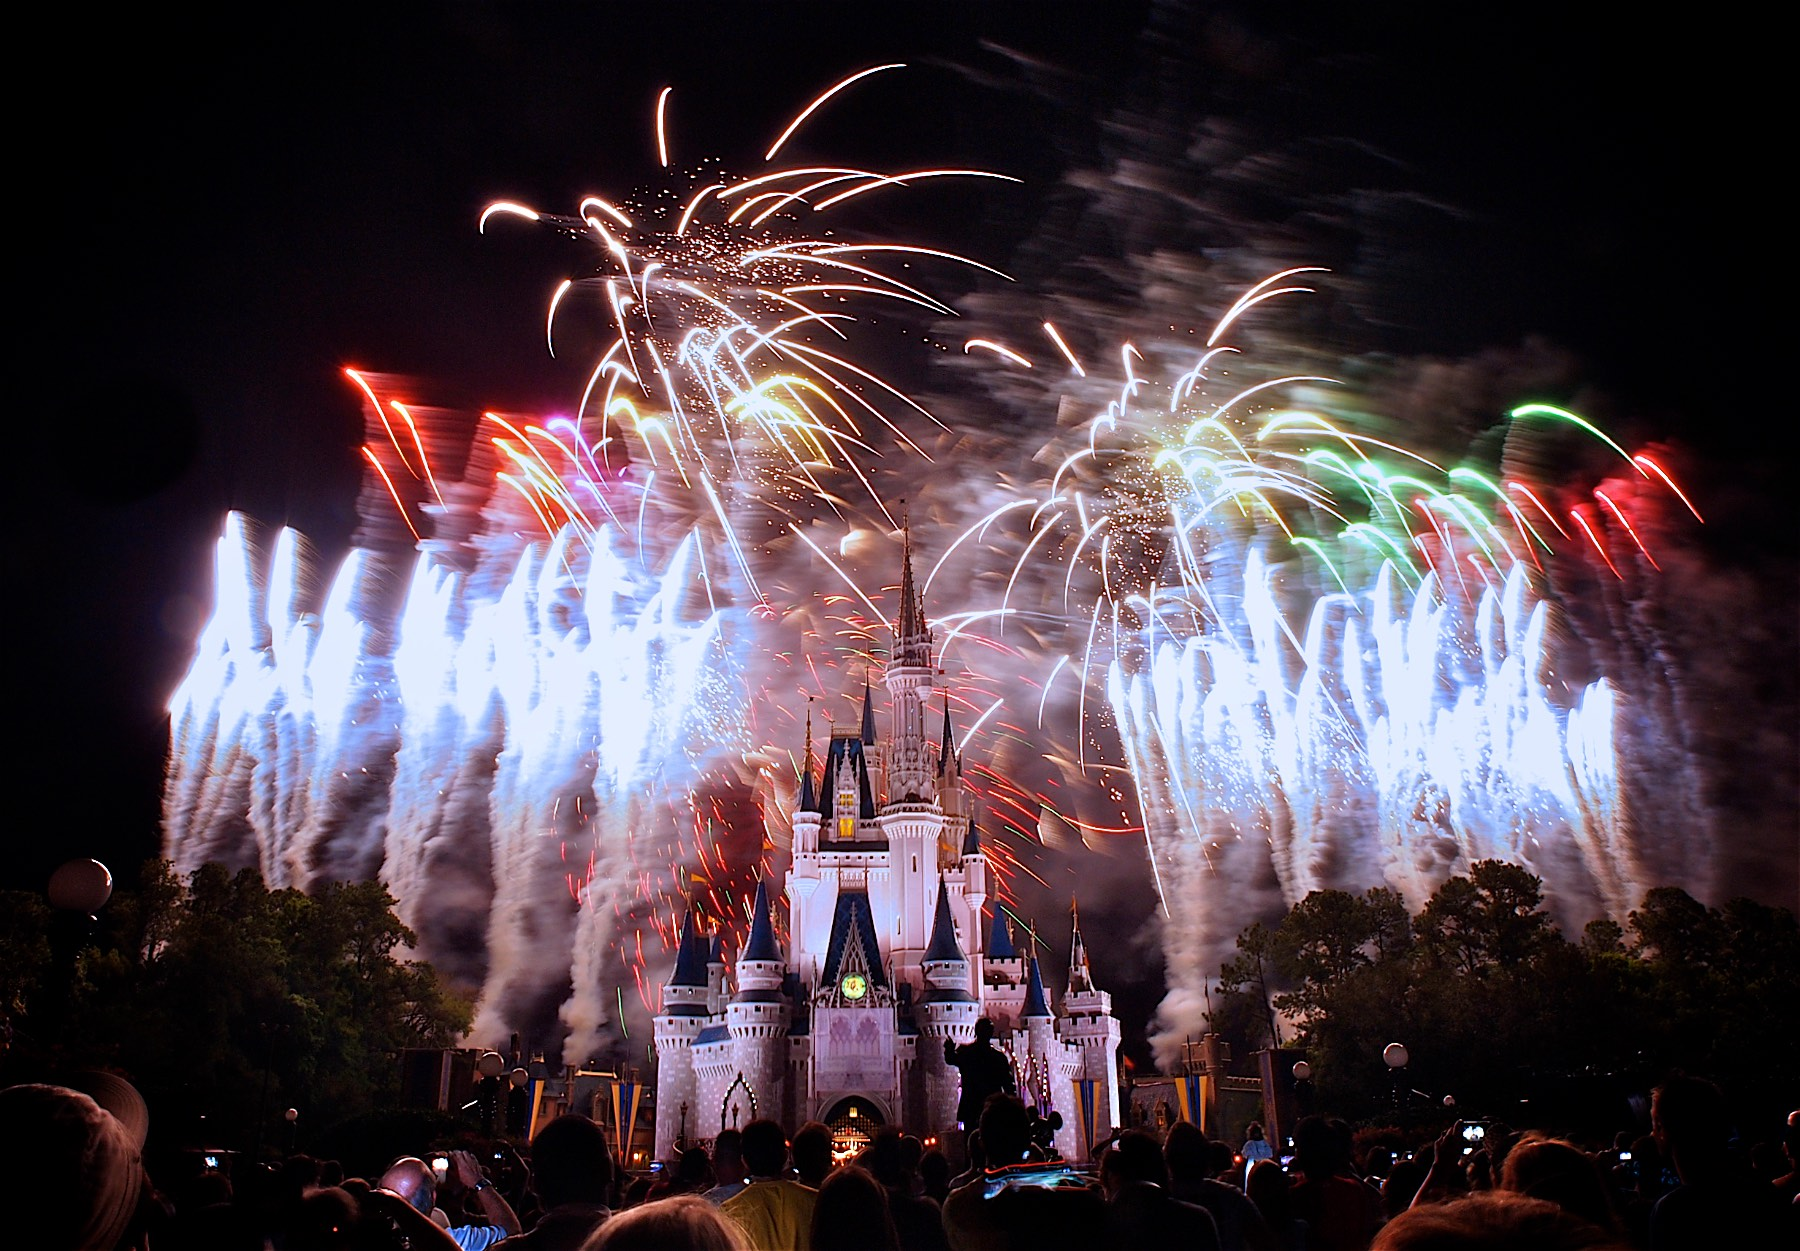 Fireworks at the Happiest Place on Earth